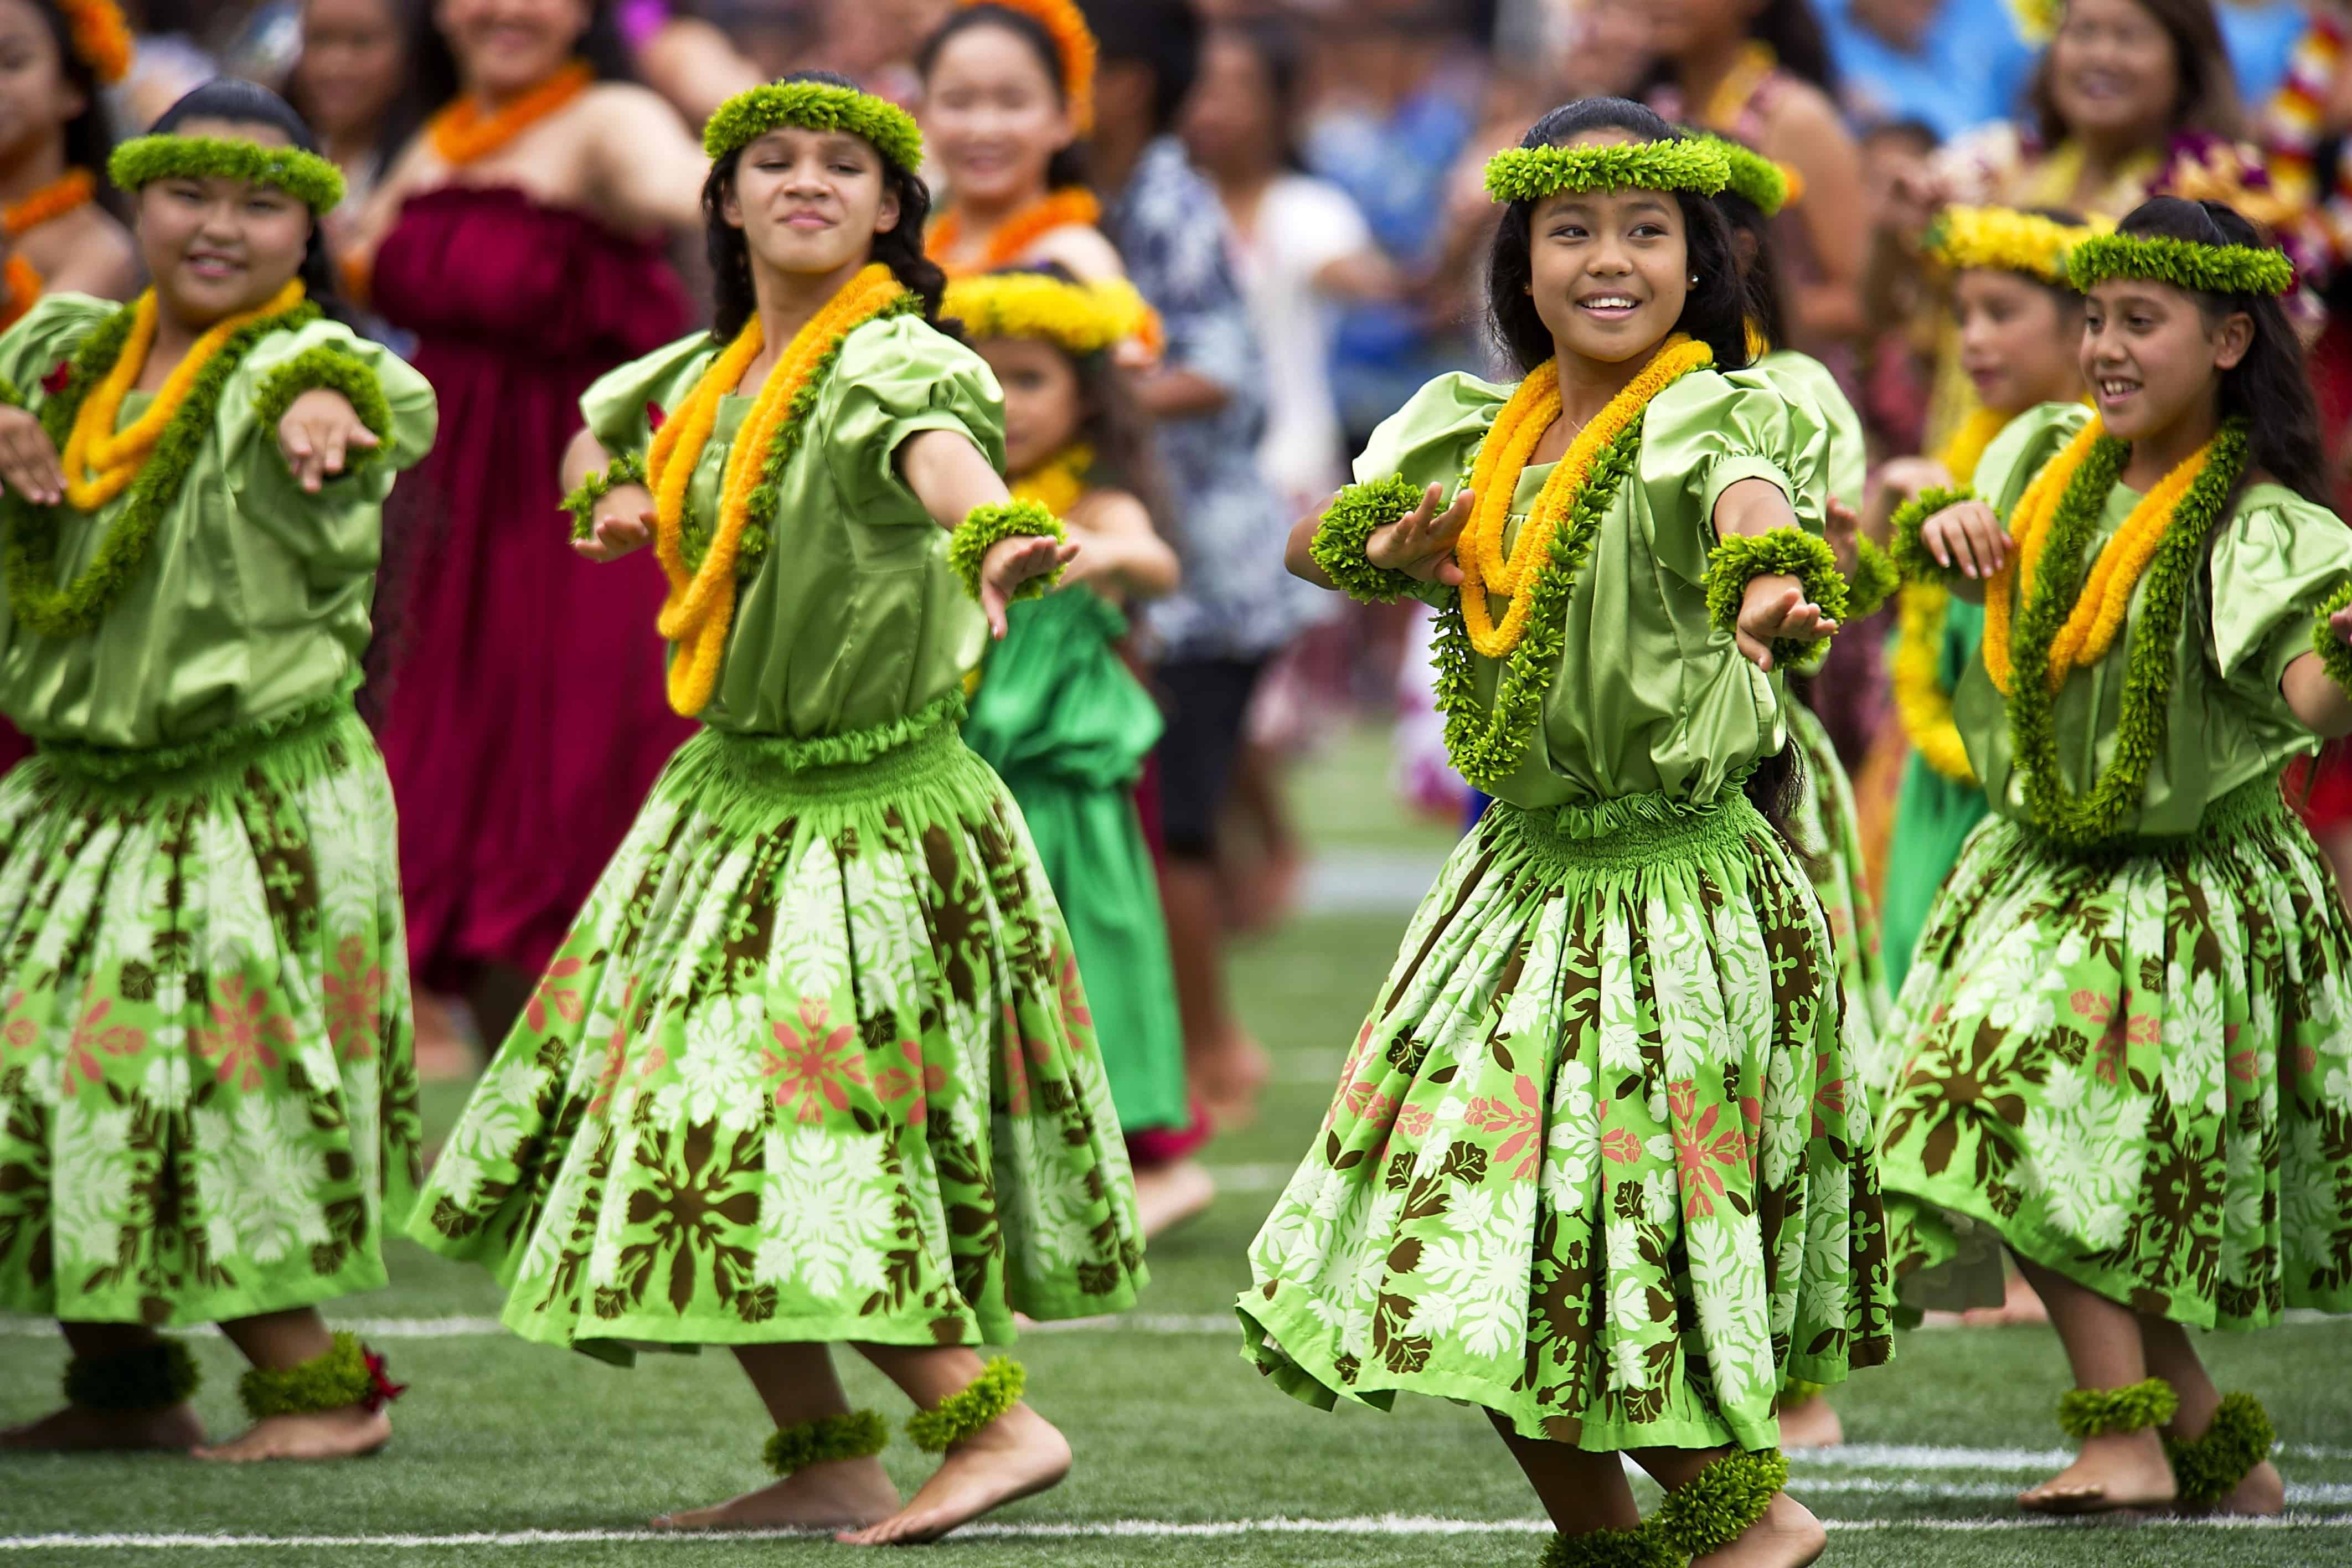 Several girls wearing green dresses and yellow leis are dancing.